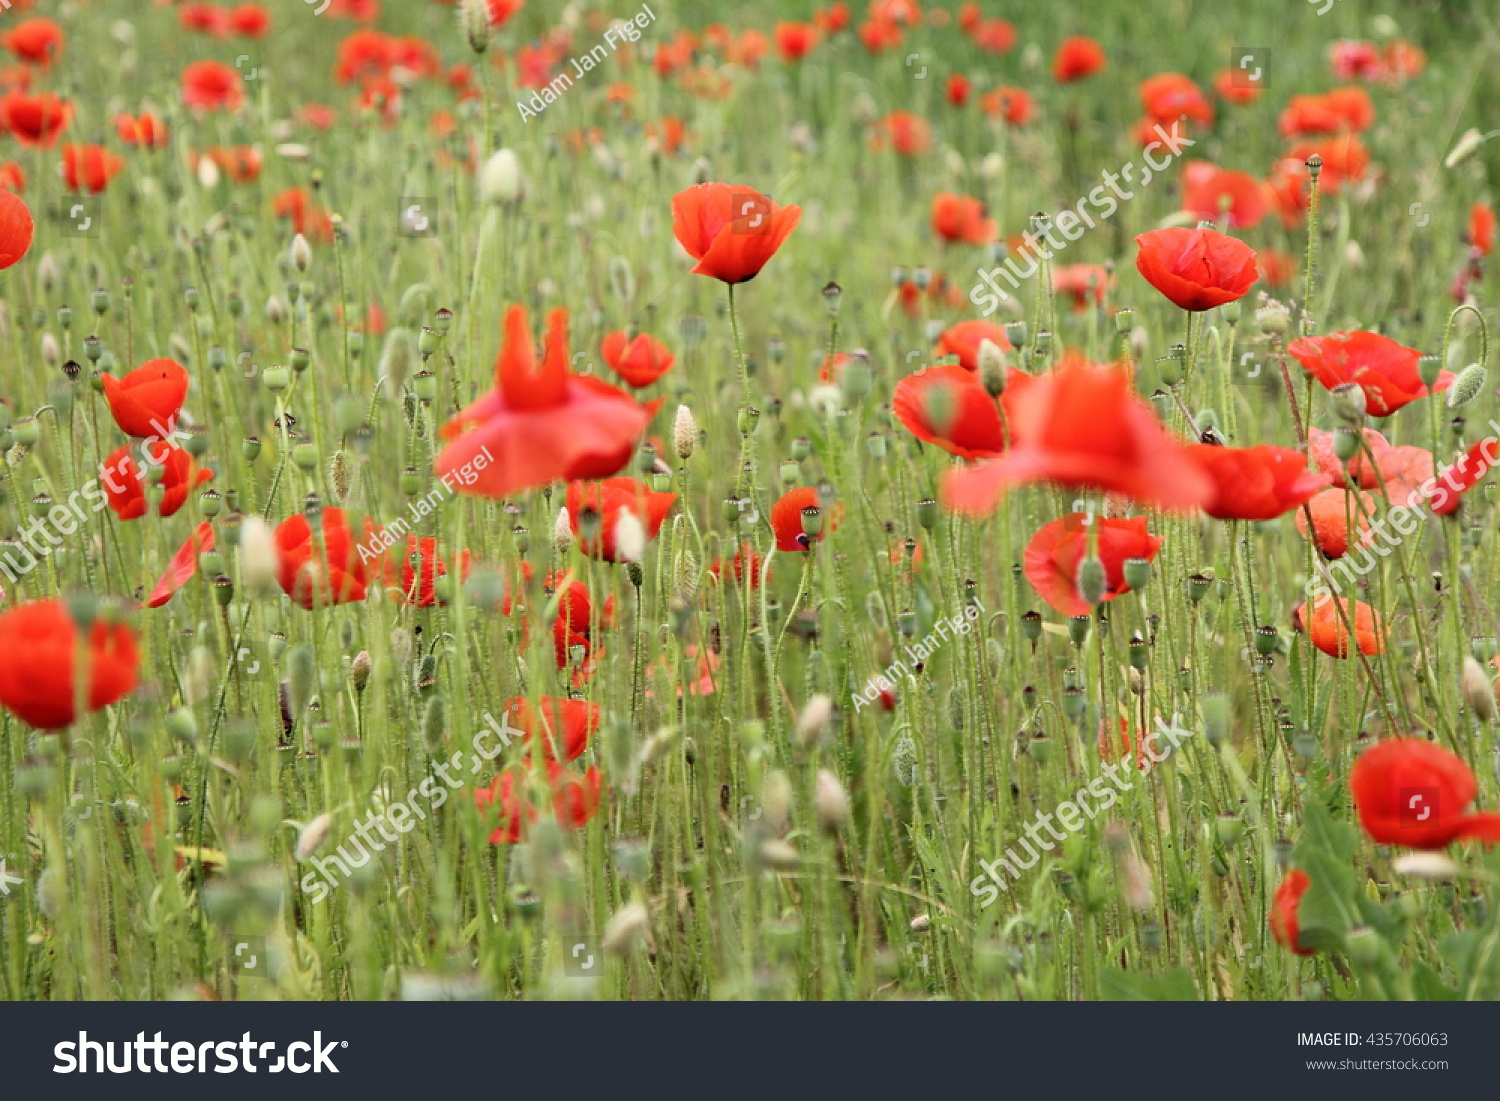 The Flowers Of The Common Or Field Poppy Papaver Rhoeas Ez Canvas